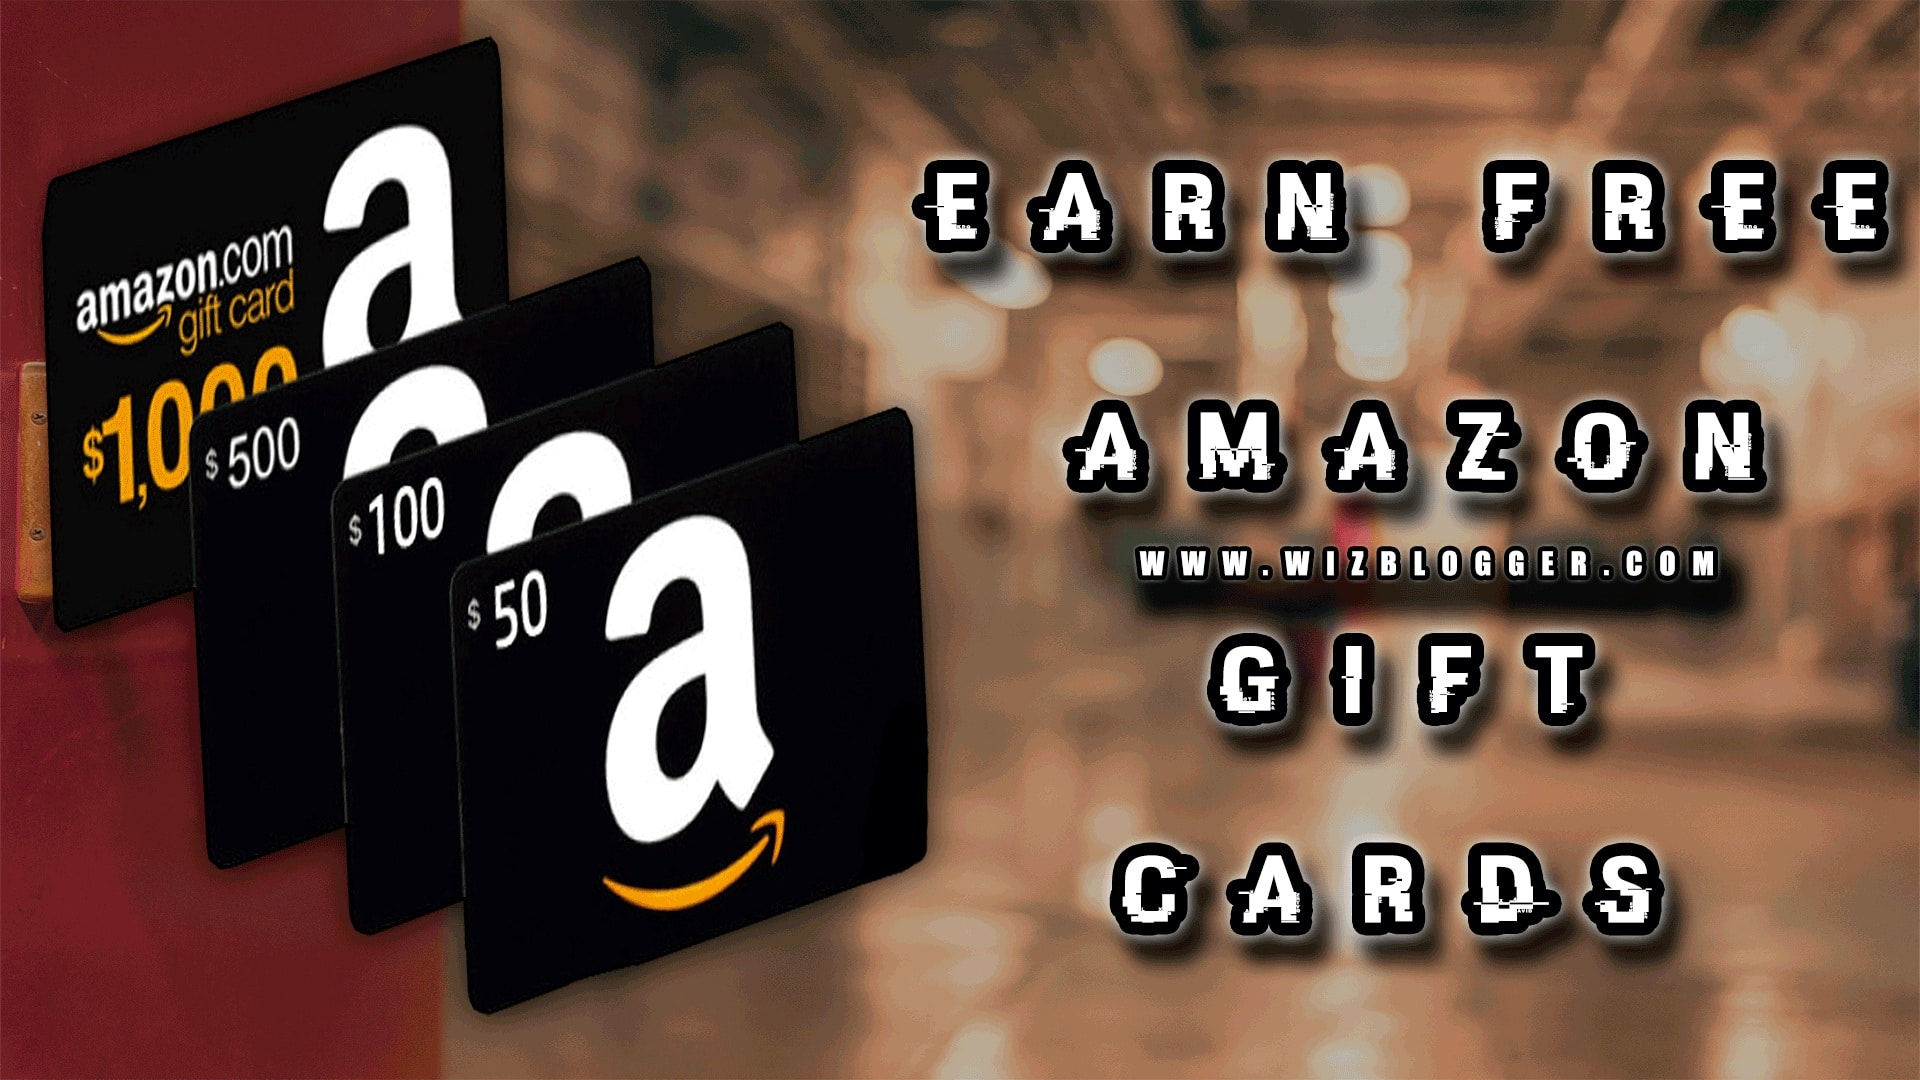 Pay outs as low as 1 for amazon gift card minimum of 10 for - Pay Outs As Low As 1 For Amazon Gift Card Minimum Of 10 For 38